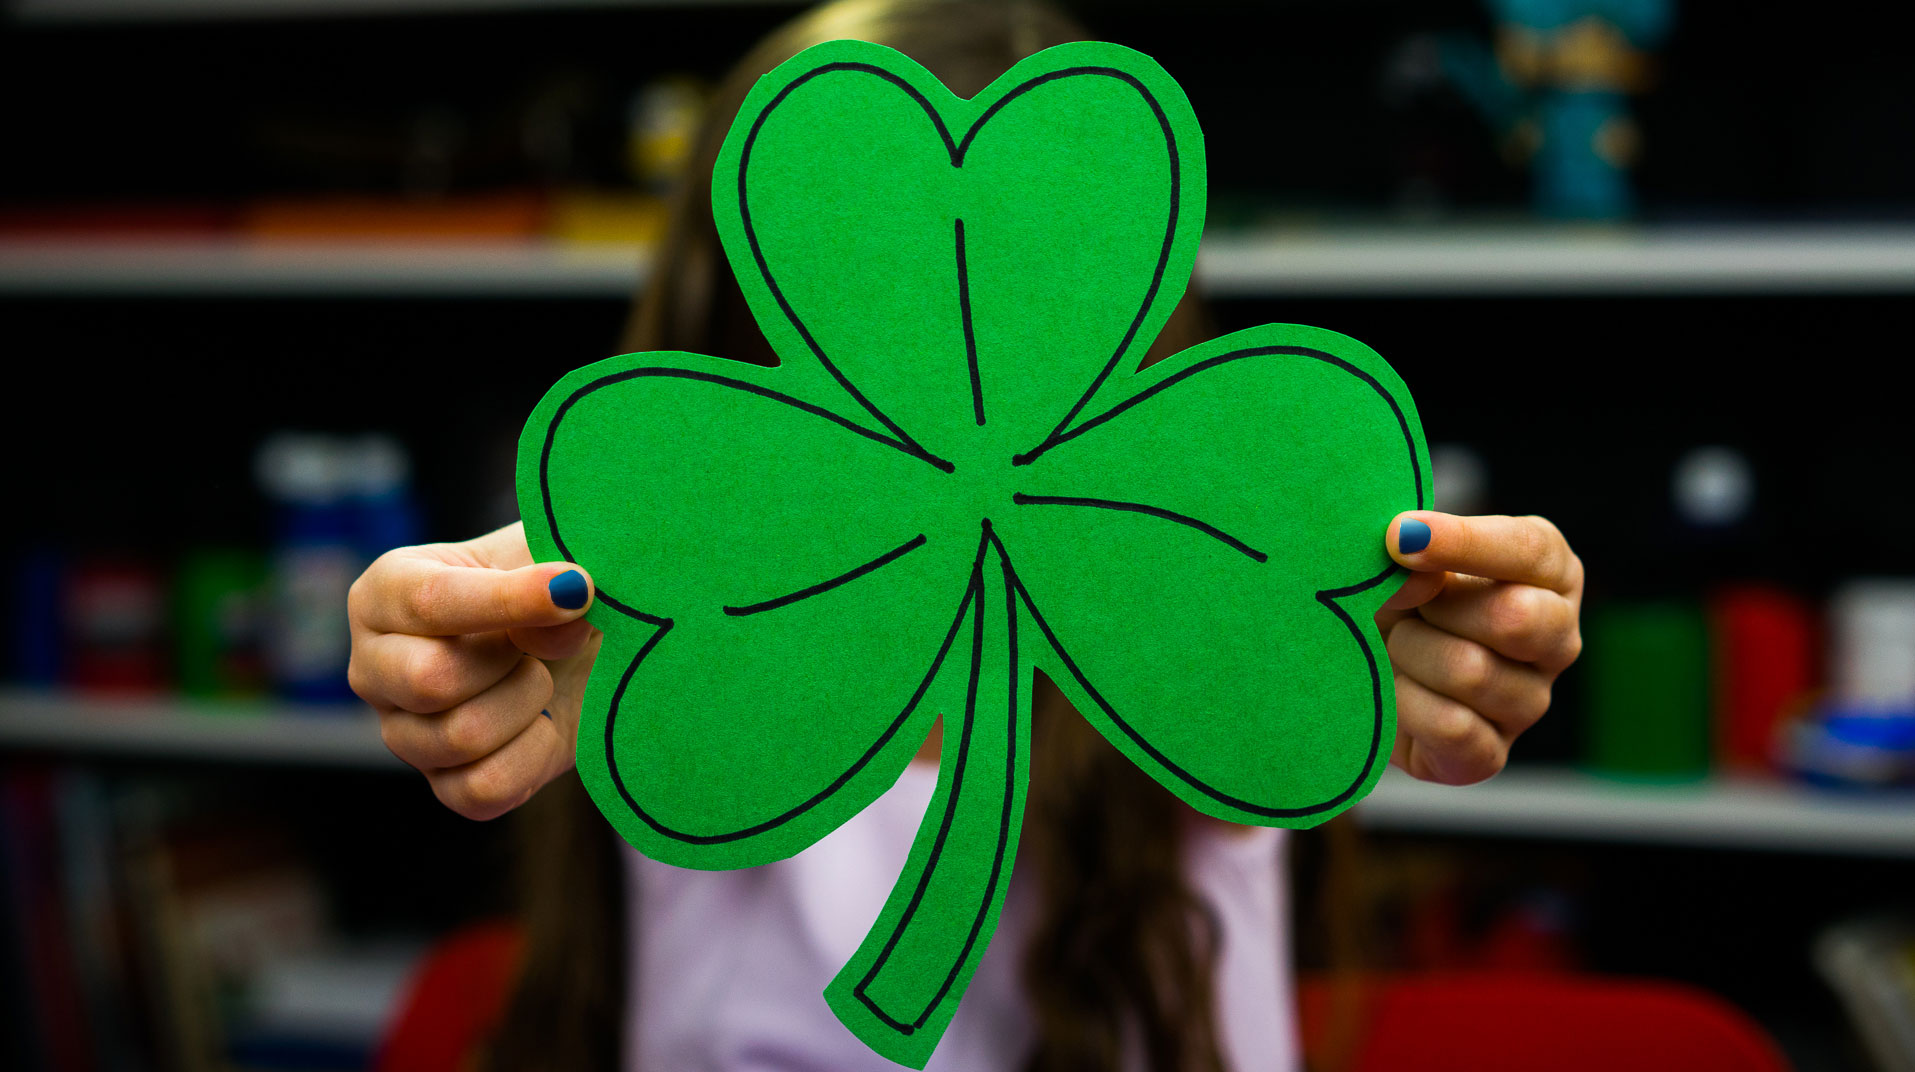 How to draw a shamrock art for kids hub voltagebd Images